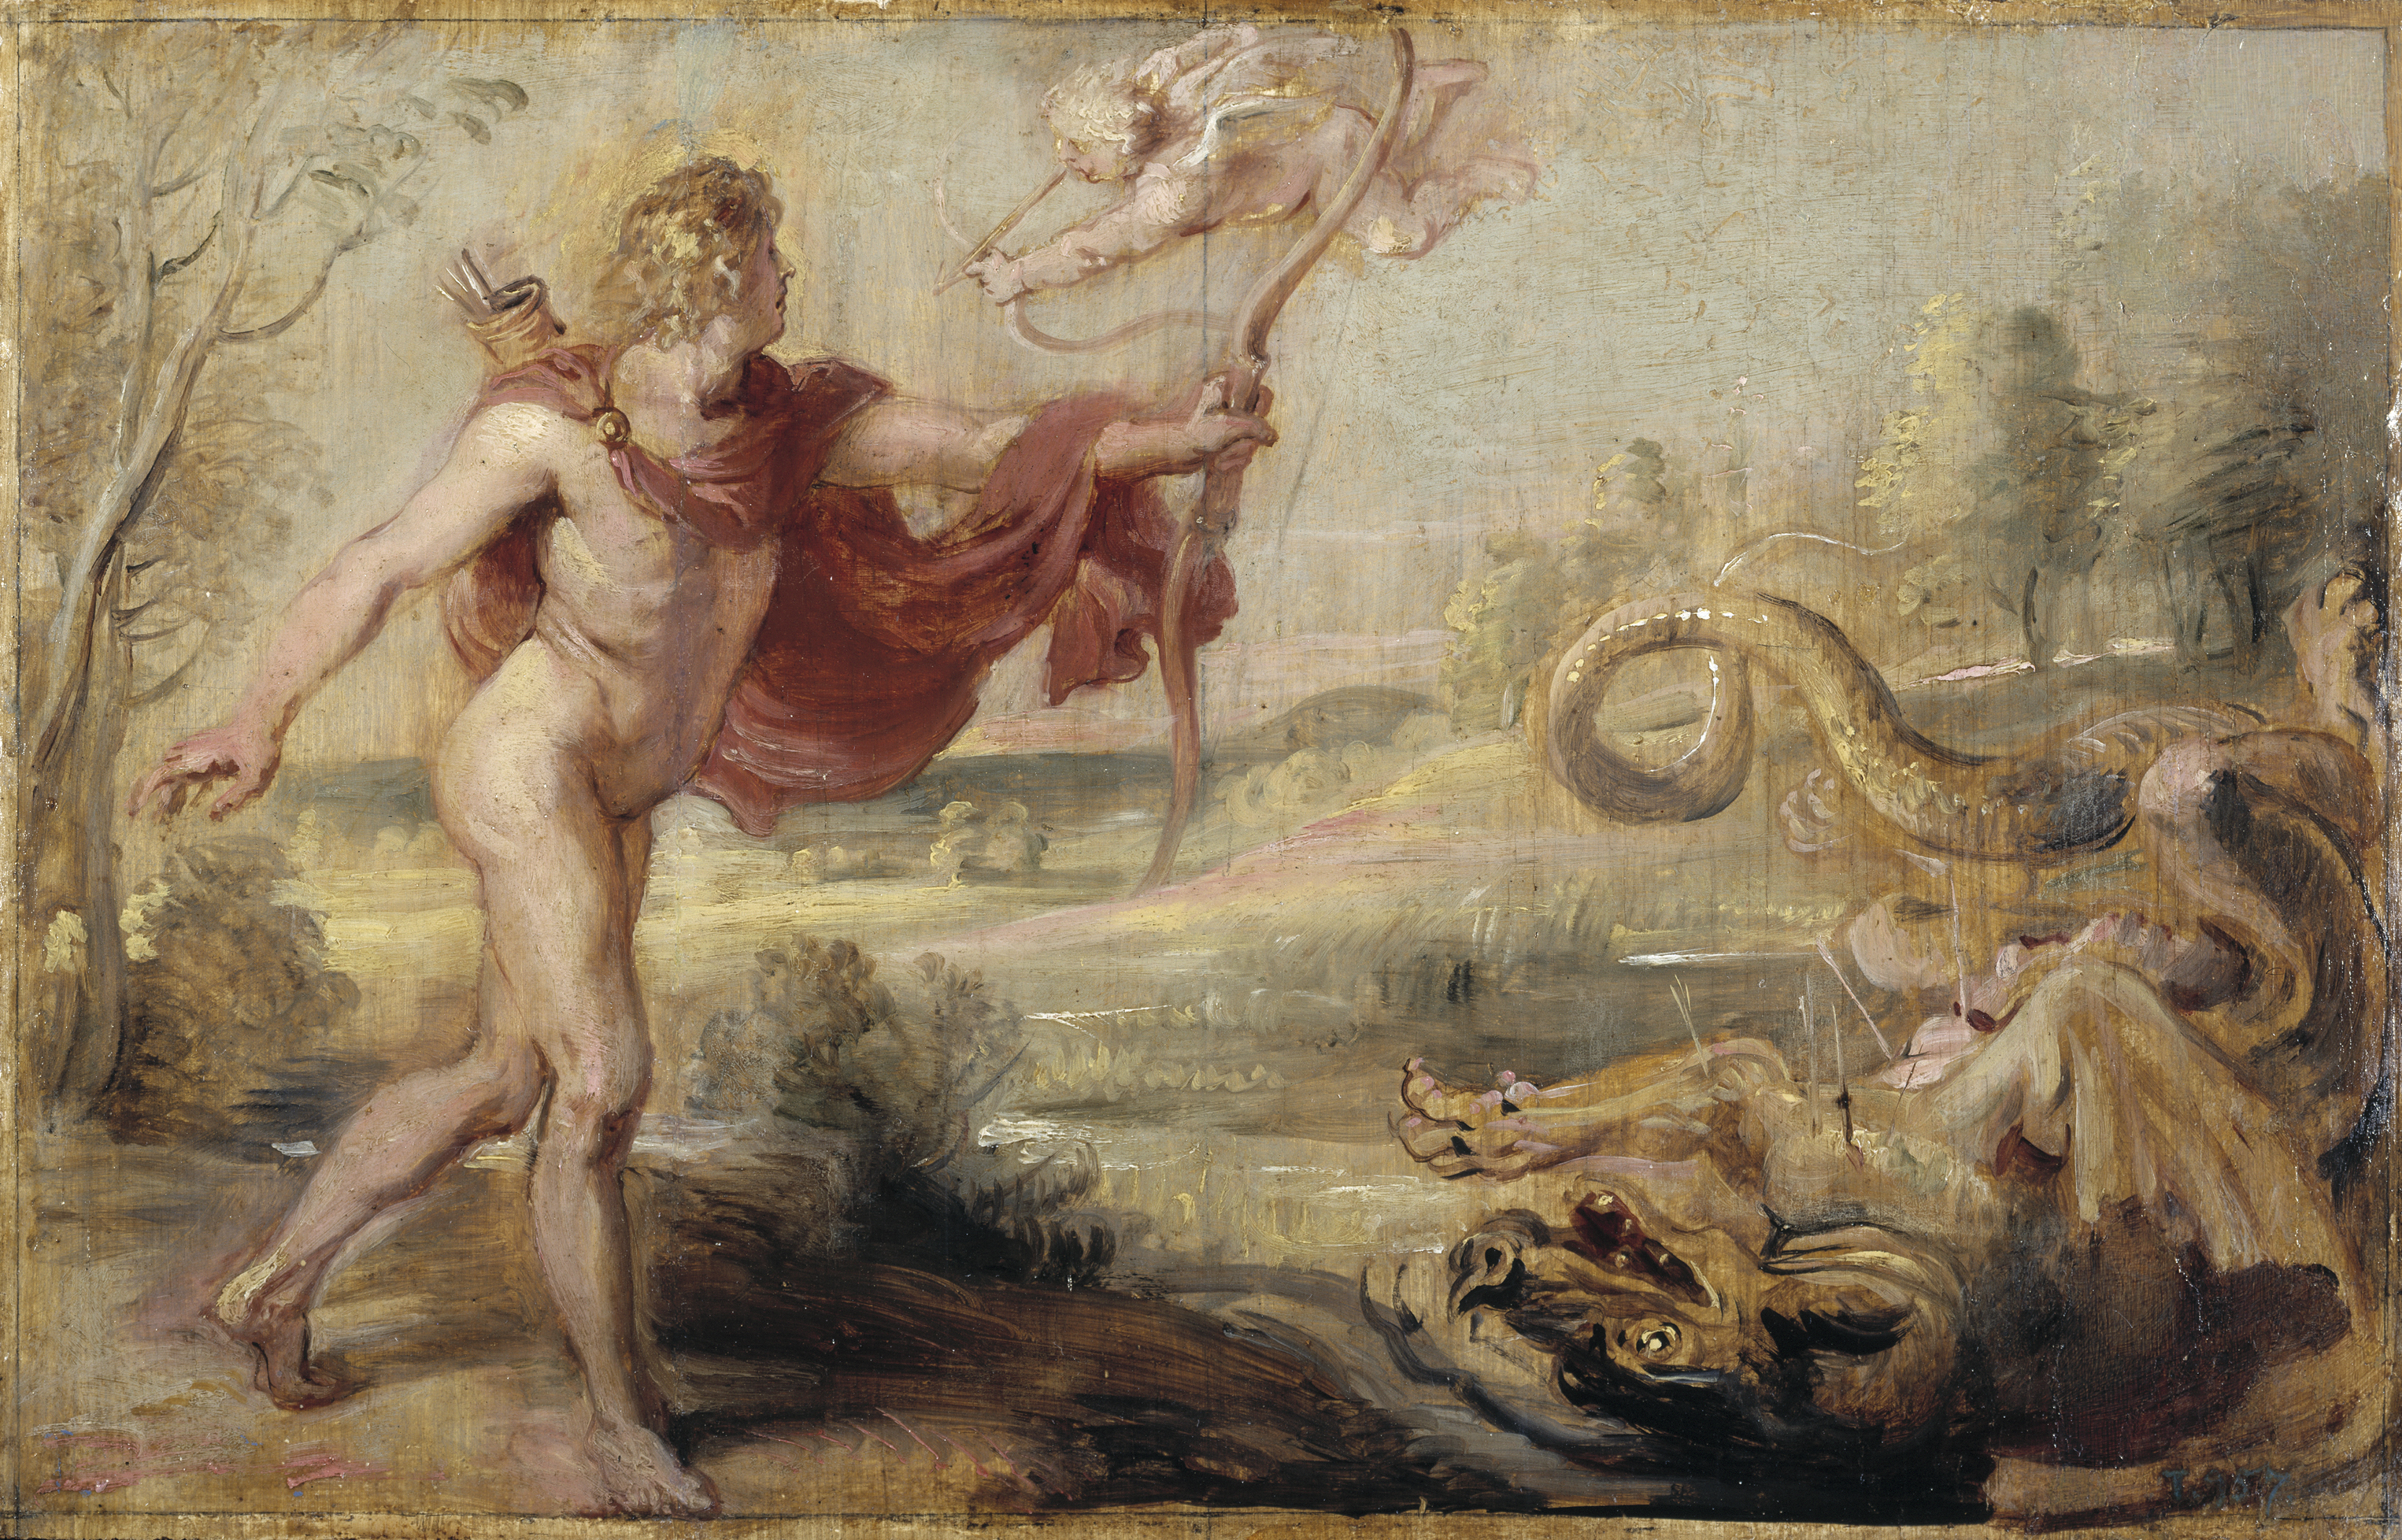 File:Peter Paul Rubens - Apollo and the Python, 1636-1637.jpg